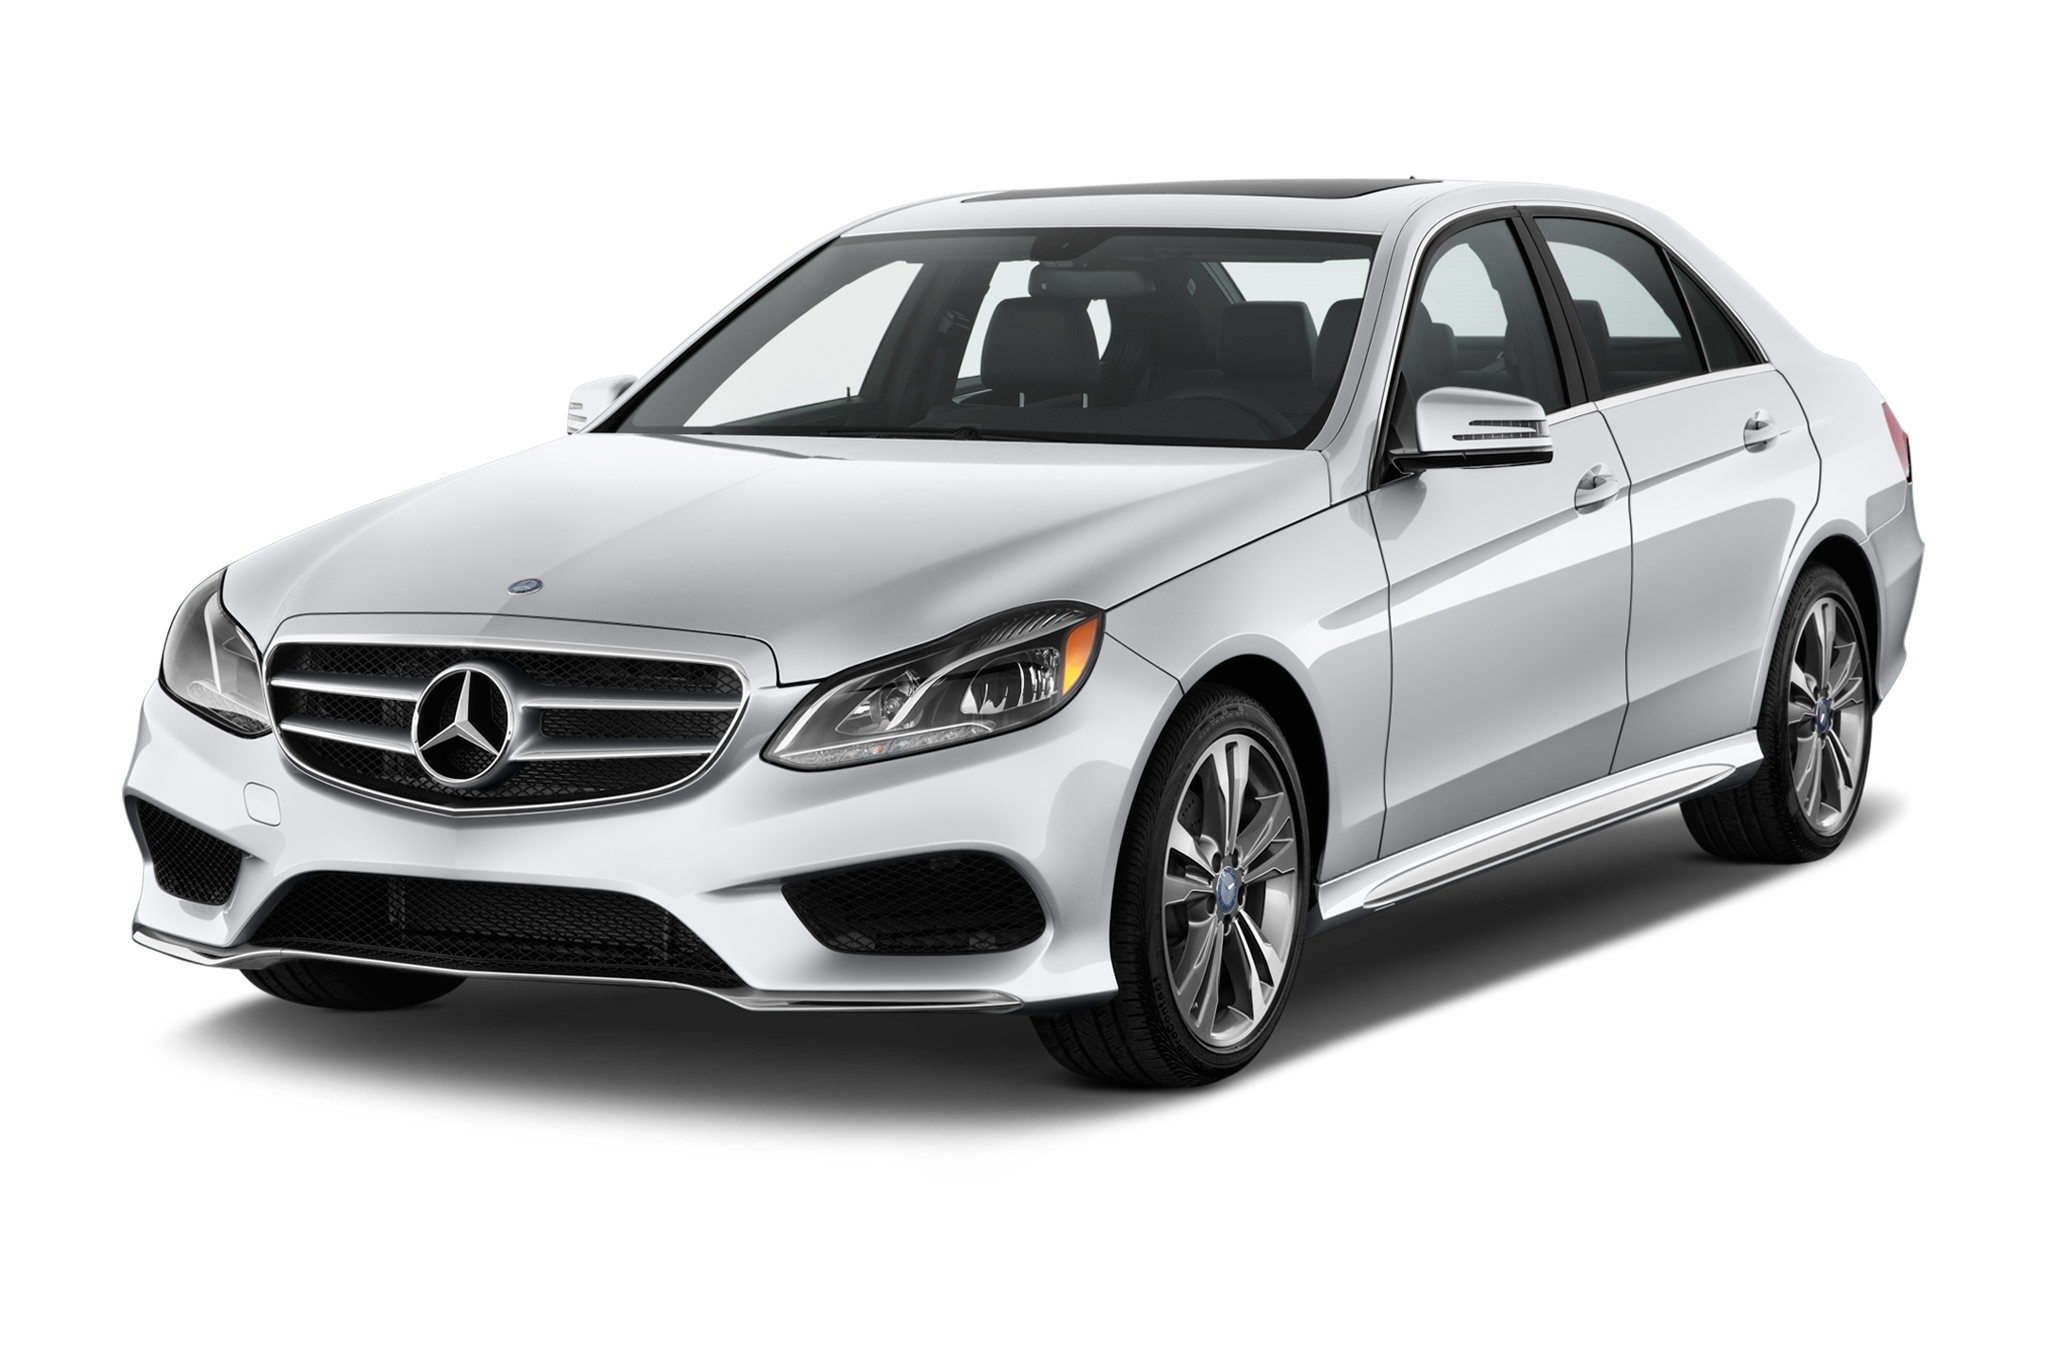 2015 mercedes benz e250 bluetec review for 2015 mercedes benz ml